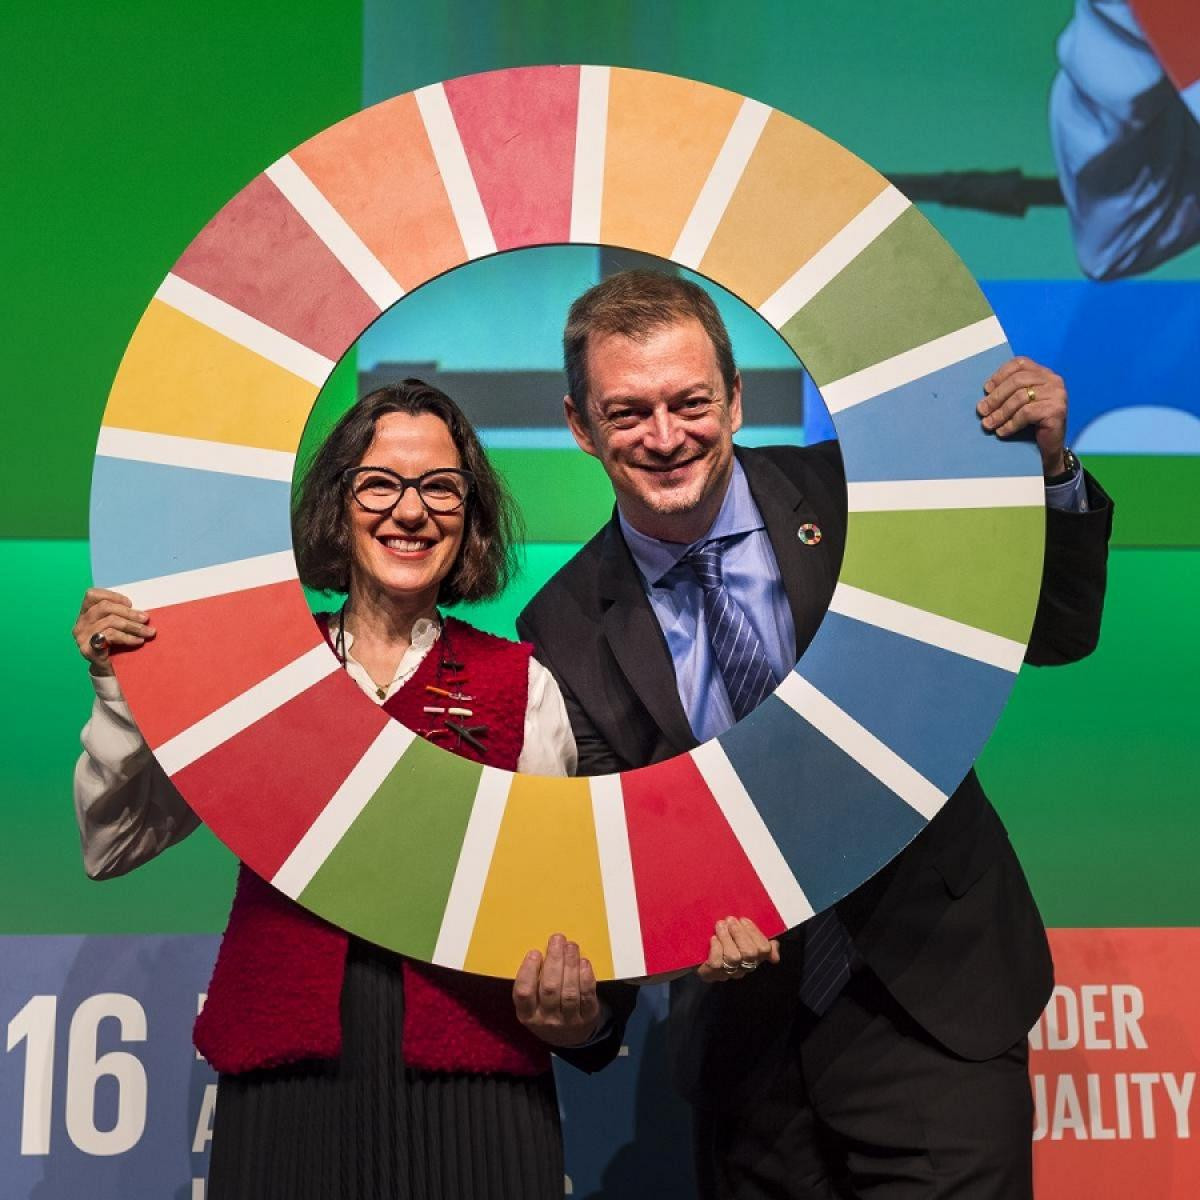 The agreement with the UN Sustainable Development Goals Action Campaign was signed during the IPC's General Assembly in Bonn ©IPC